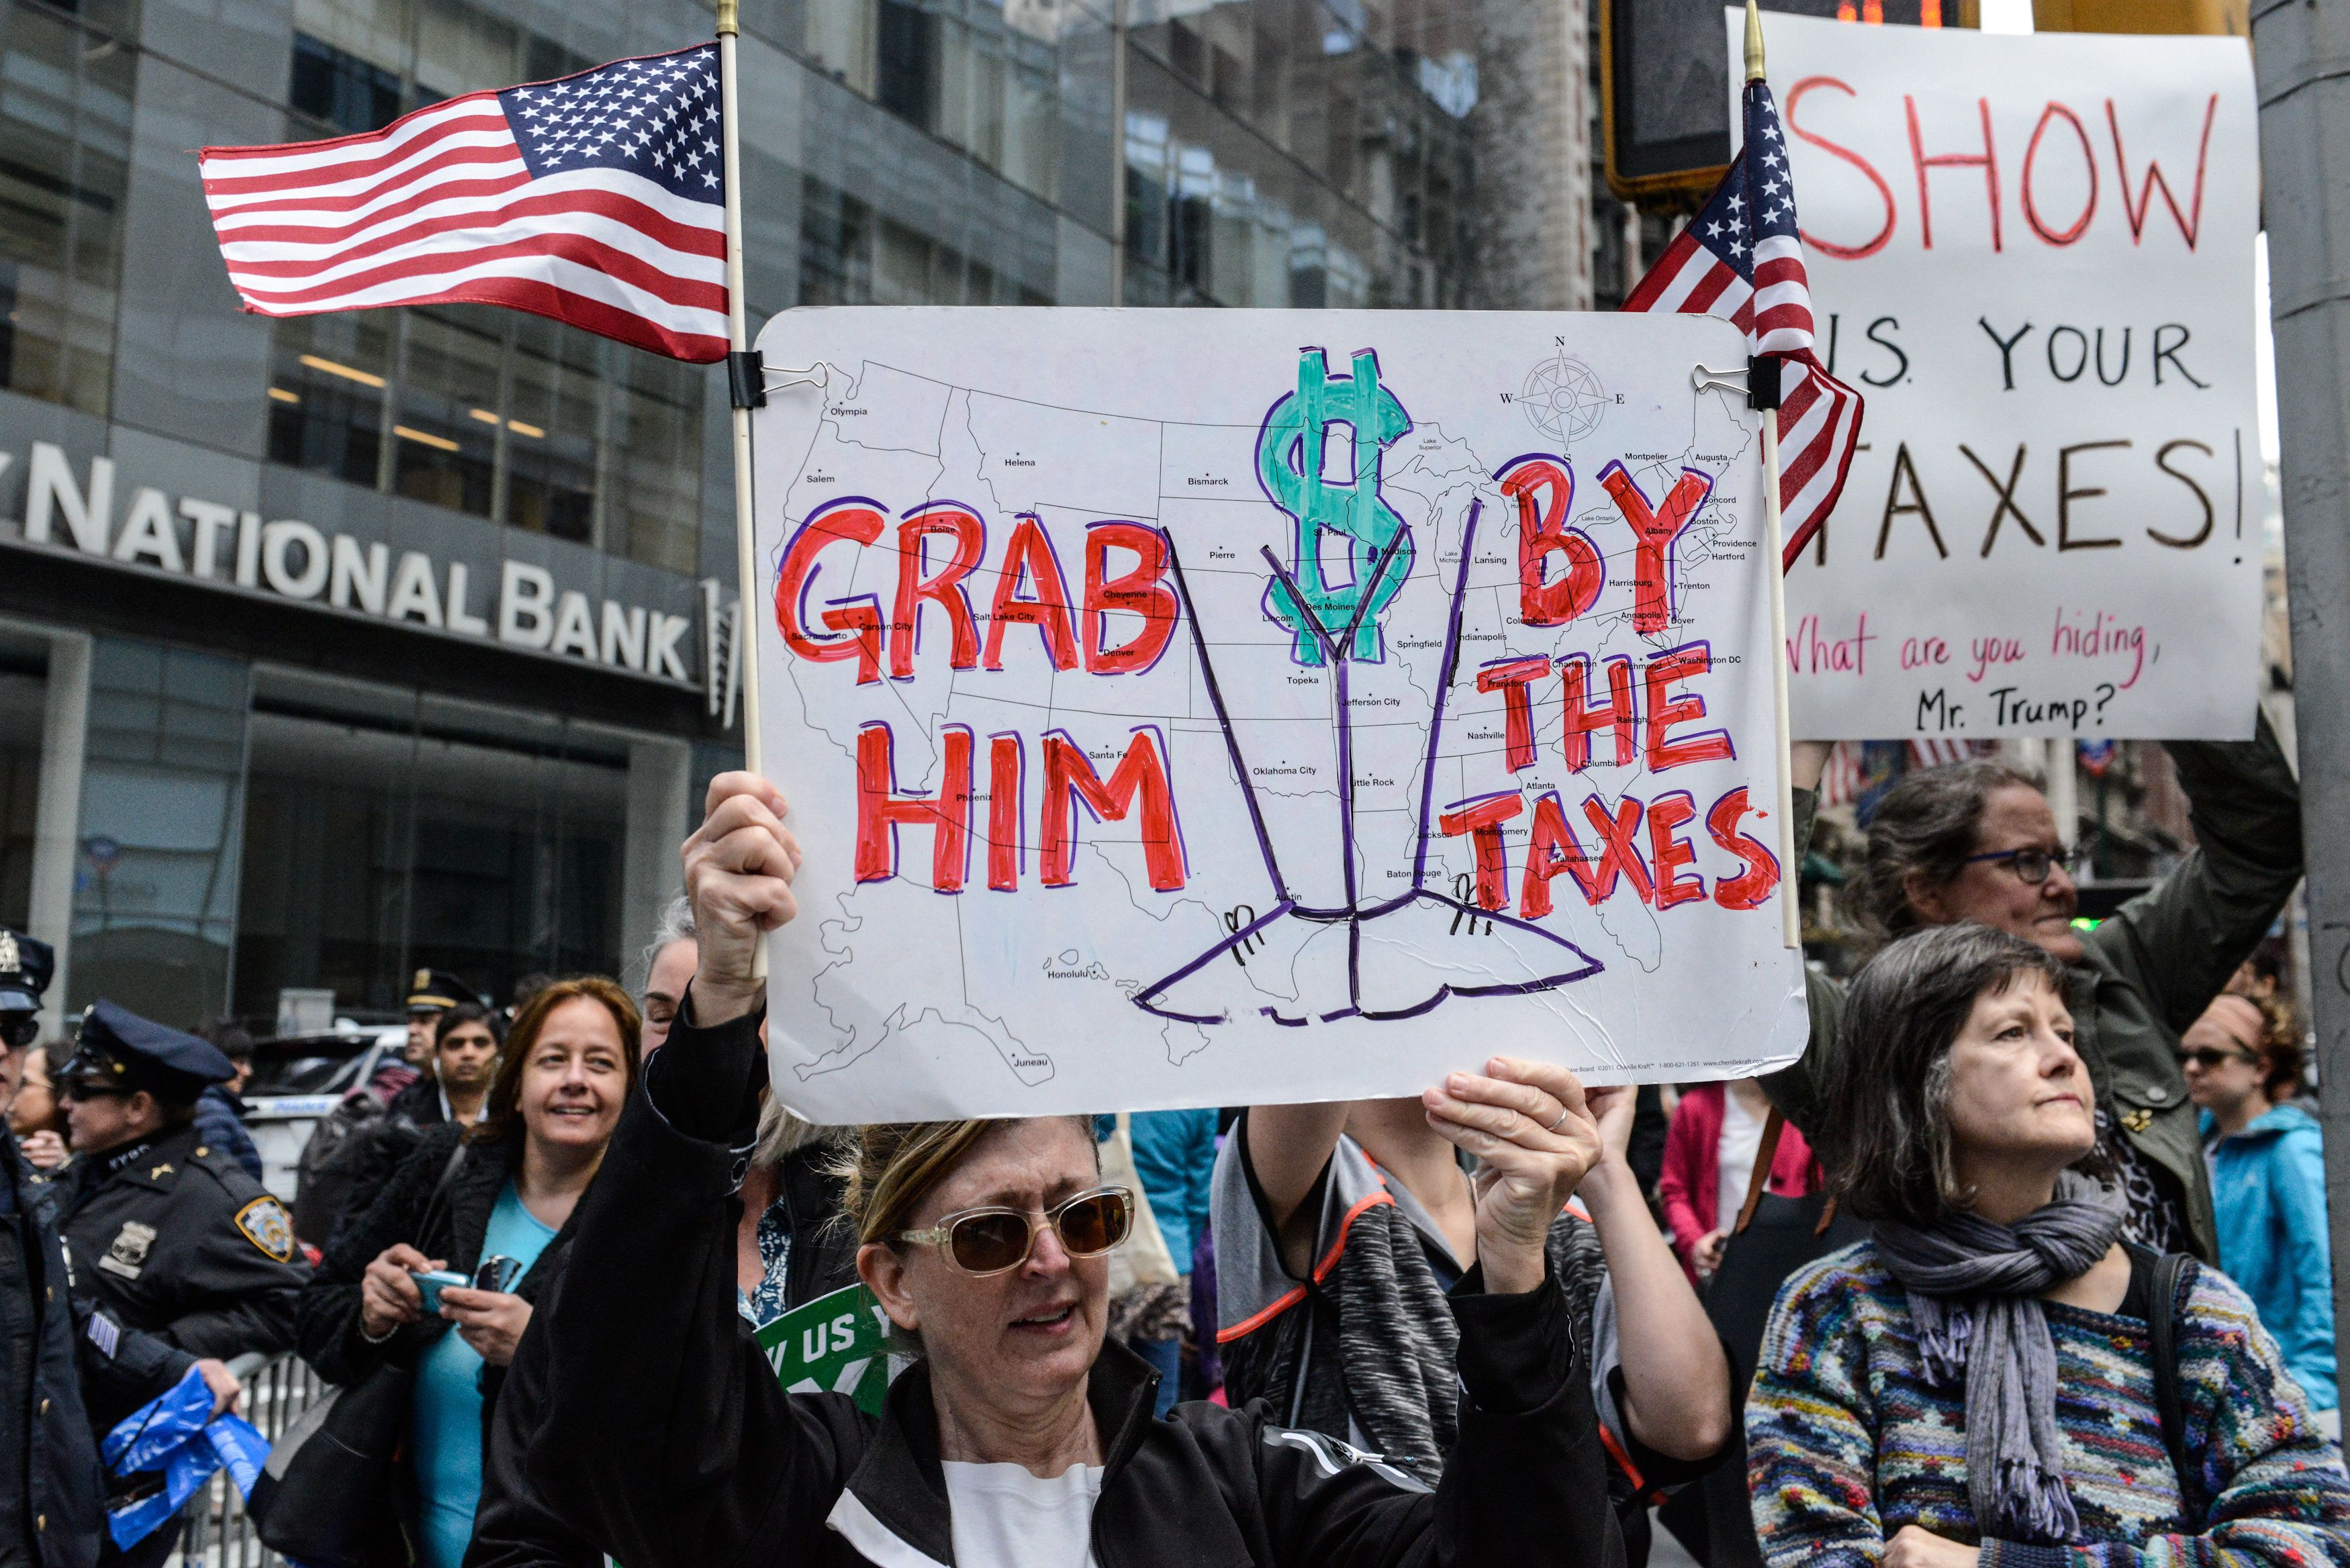 NEW YORK, NY - APRIL 15: People participate in a Tax Day protest on April 15, 2017 in New York City. Activists in cities across the nation are marching today to call on President Donald Trump to release his tax returns. (Photo by Stephanie Keith/Getty Images)